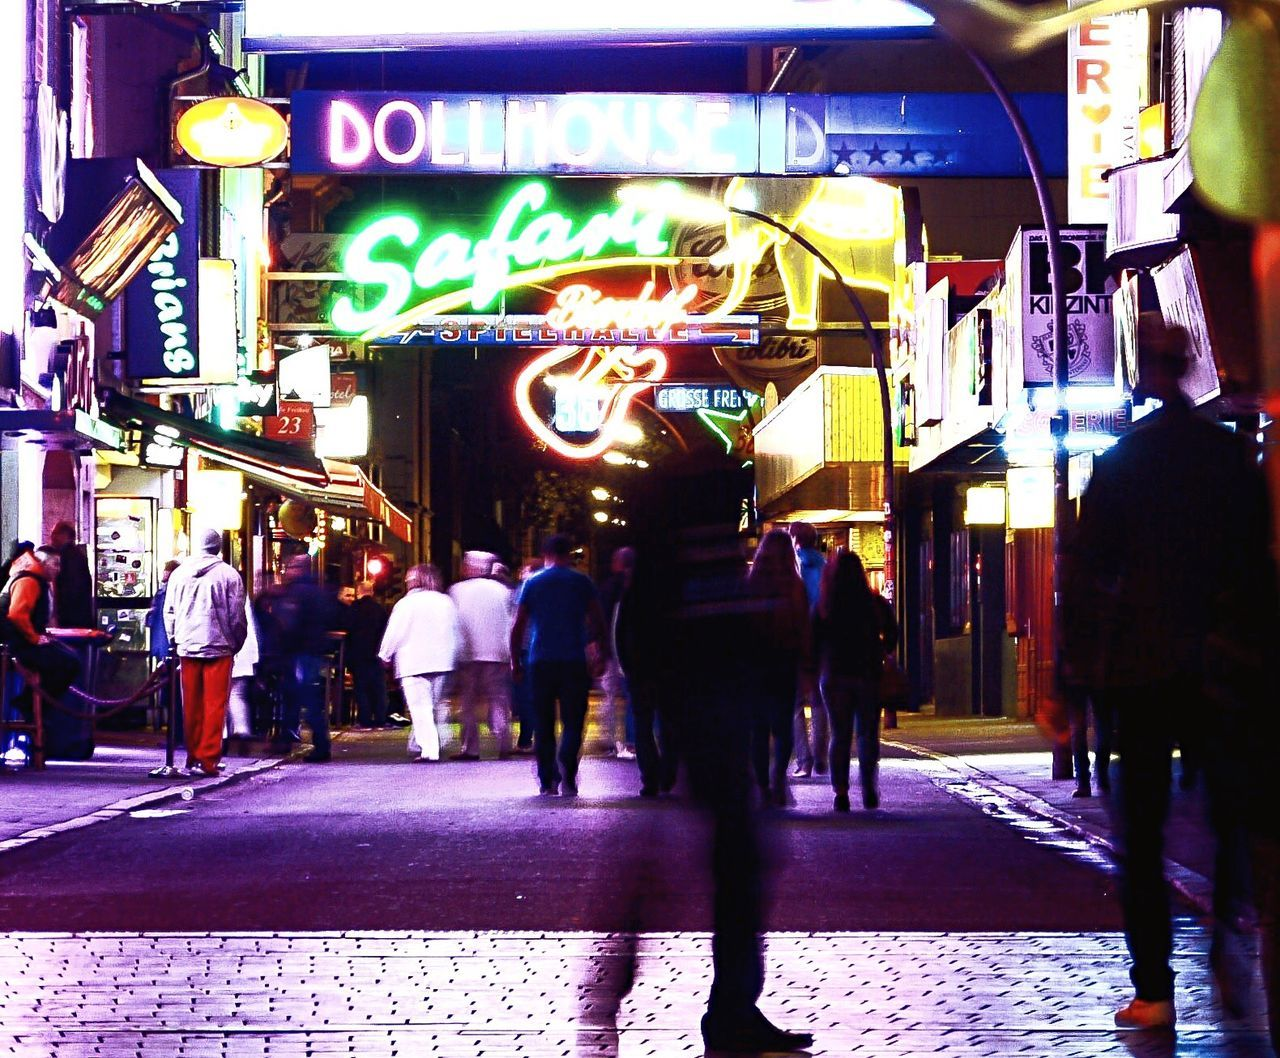 Street Men Person Walking City Architecture Building Exterior Road Group Of People Lifestyles Built Structure City Life Leisure Activity Store Illuminated Casual Clothing Night Pedestrian City Street Advertisement Nightphotography Night Lights Party Lights Redlightdistrict Reeperbahn